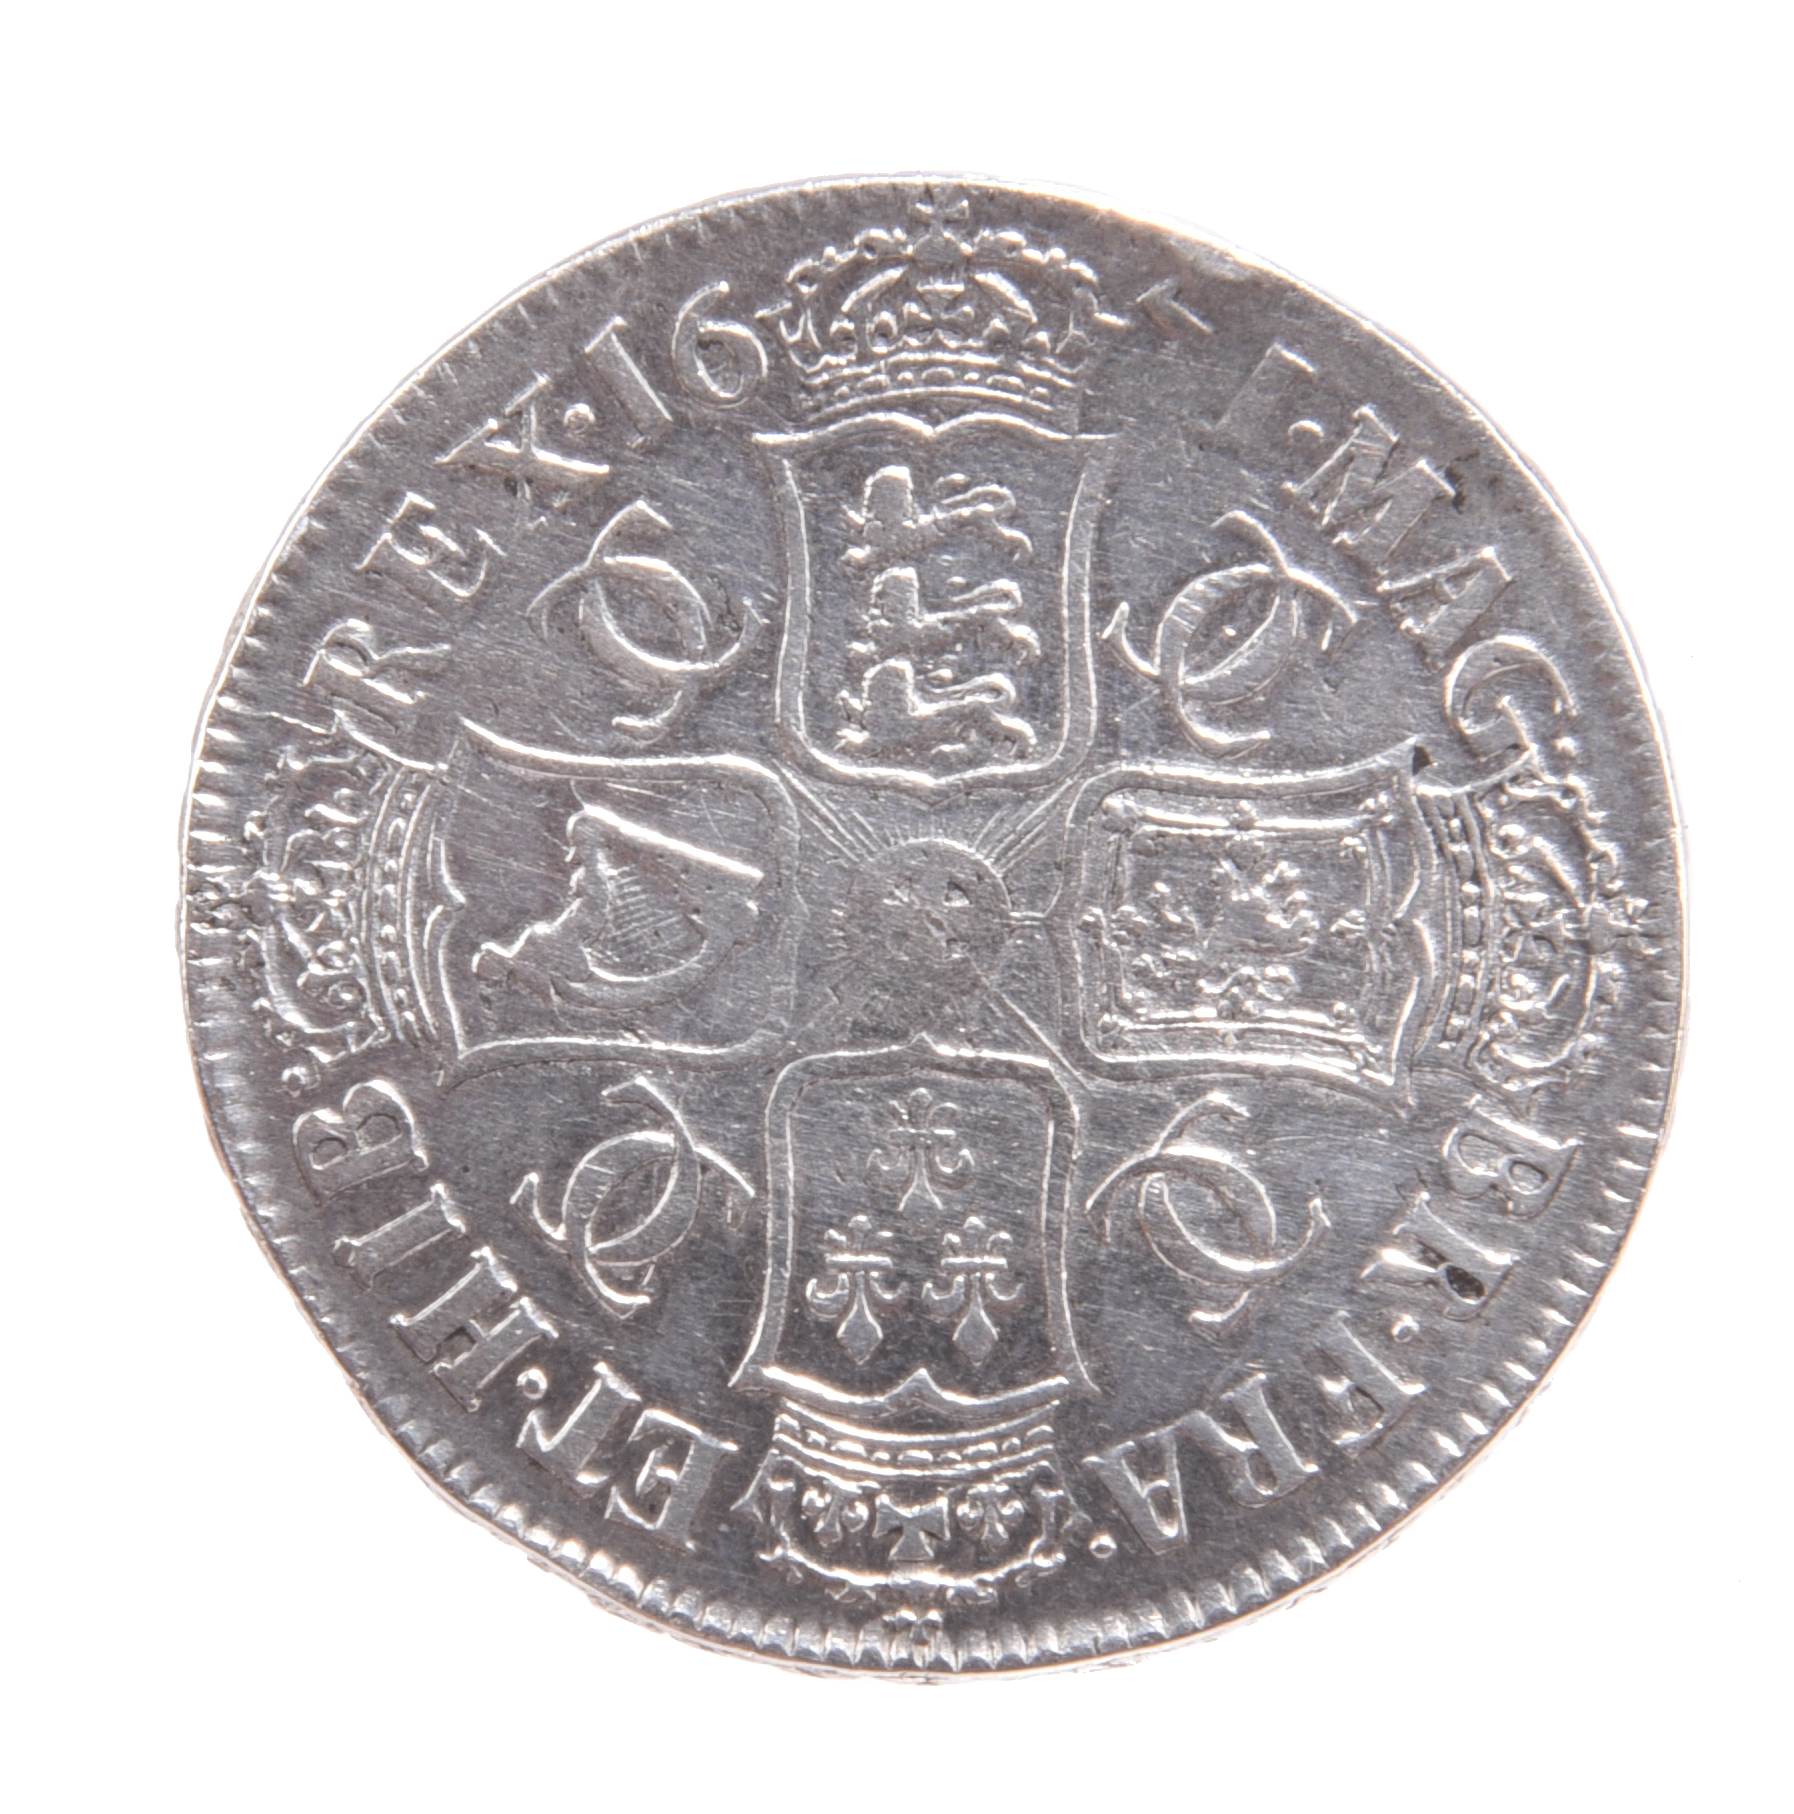 Charles II, silver crown, 1671, second bust, edge V. TERTIO (S 3357), cleaned, good fine. - Image 2 of 2